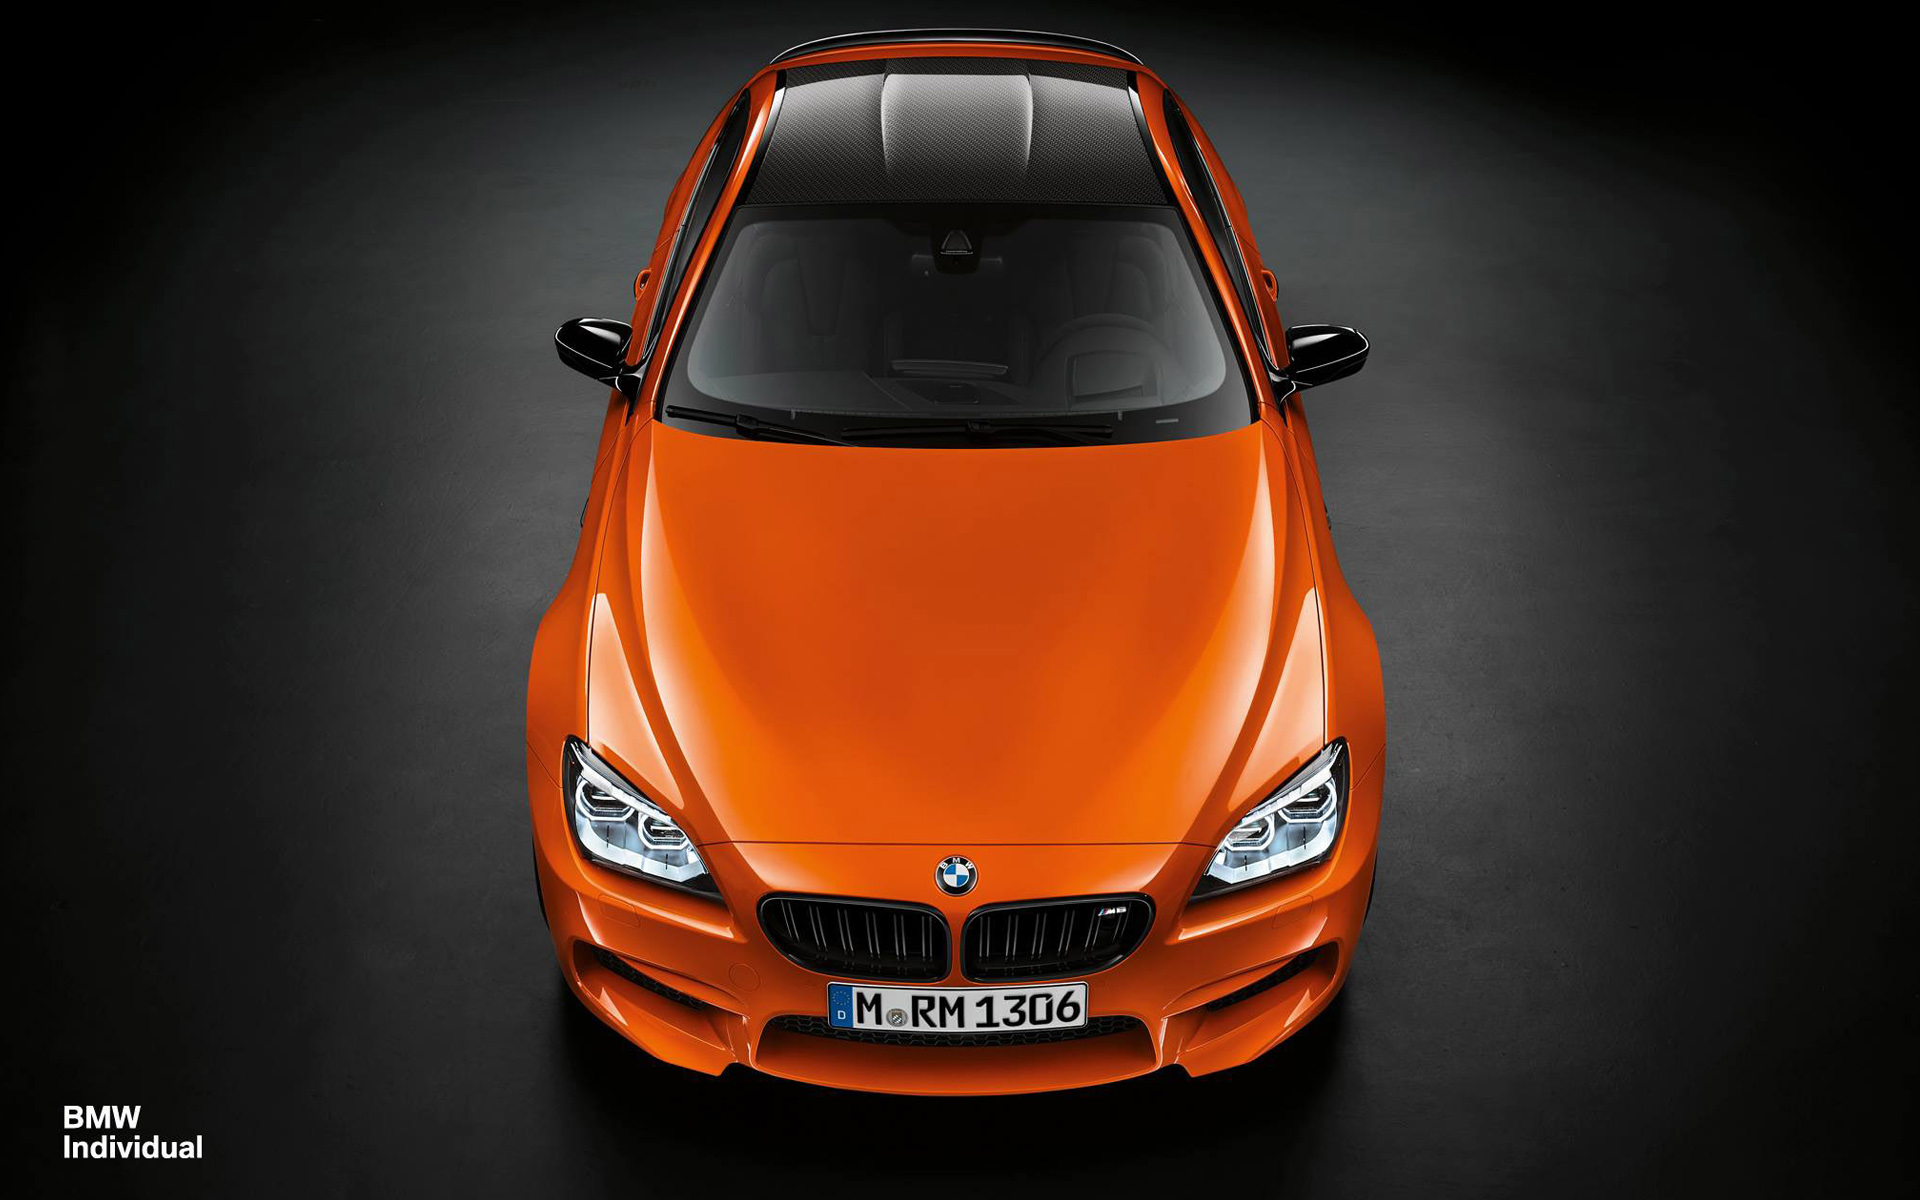 BMW M6 Coupe Individual Wallpaper   HD Car Wallpapers   ID ...